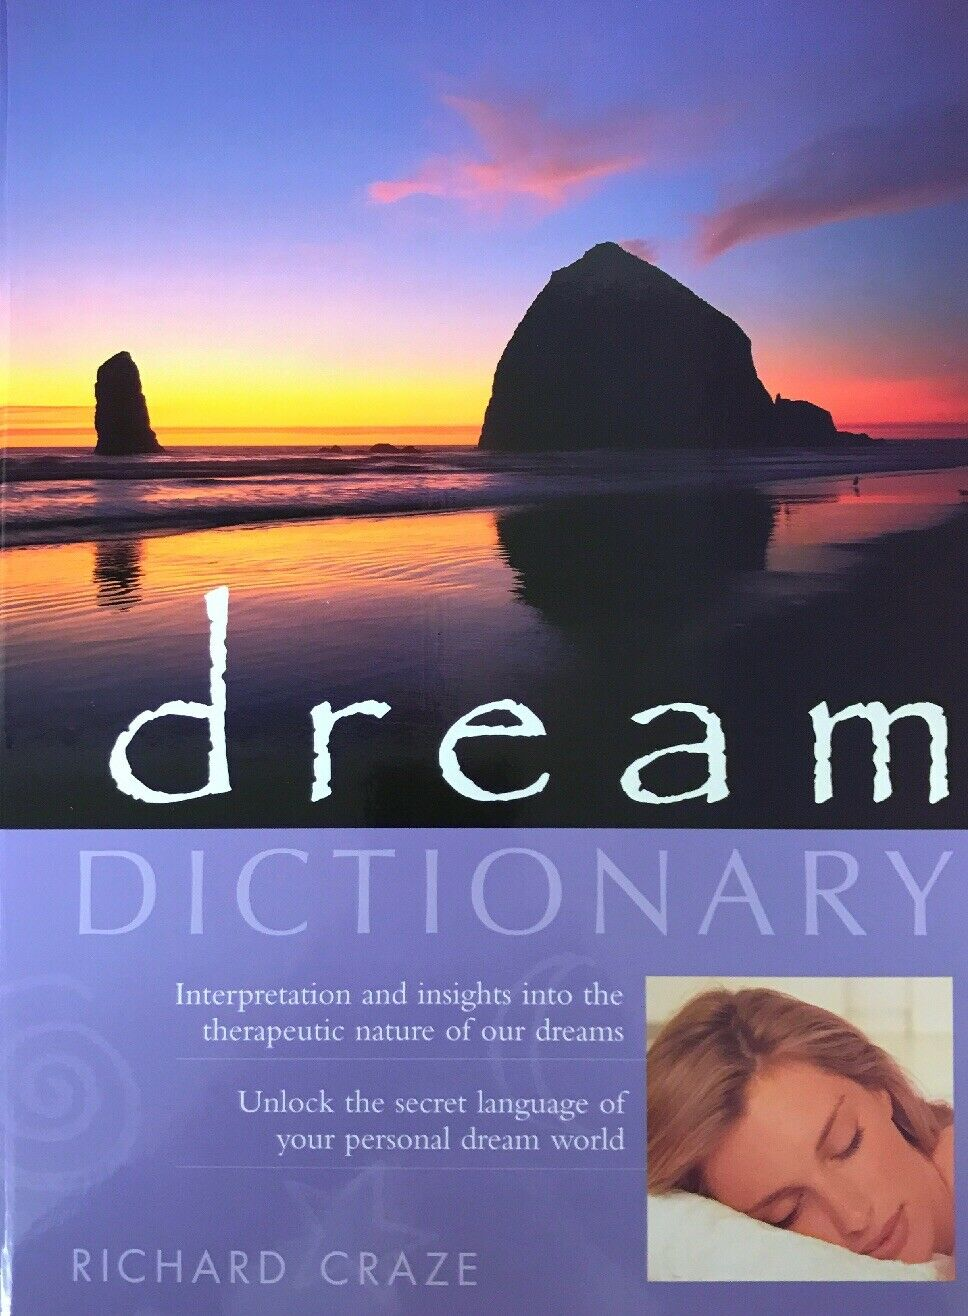 The Dictionary Of Dreams And Their Meanings Interpretation And Insights Into Th For Sale Online Ebay